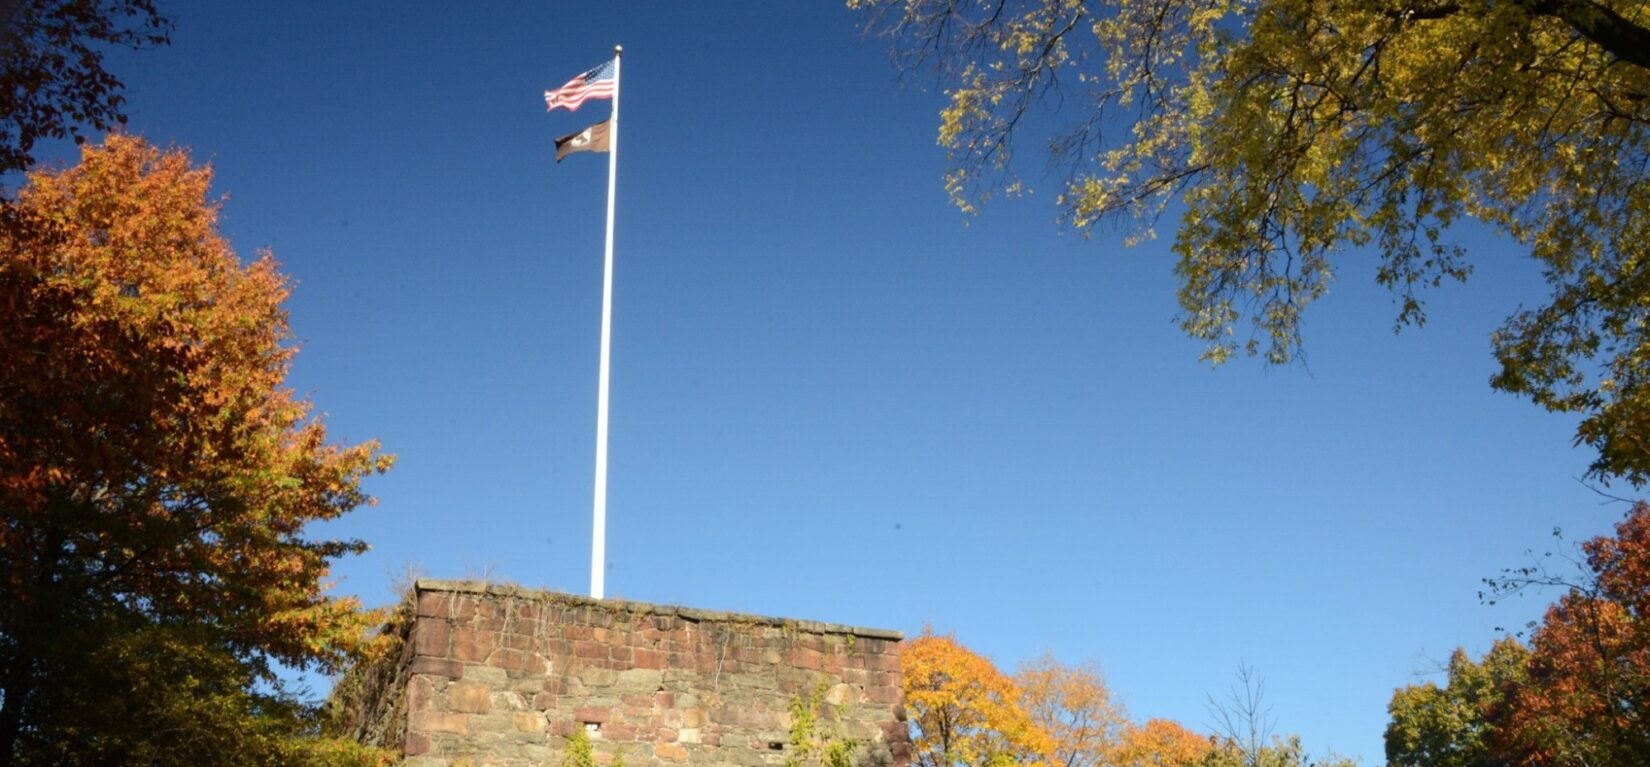 Two flags at the top of a white flagpole on the roof of the Blockhouse.